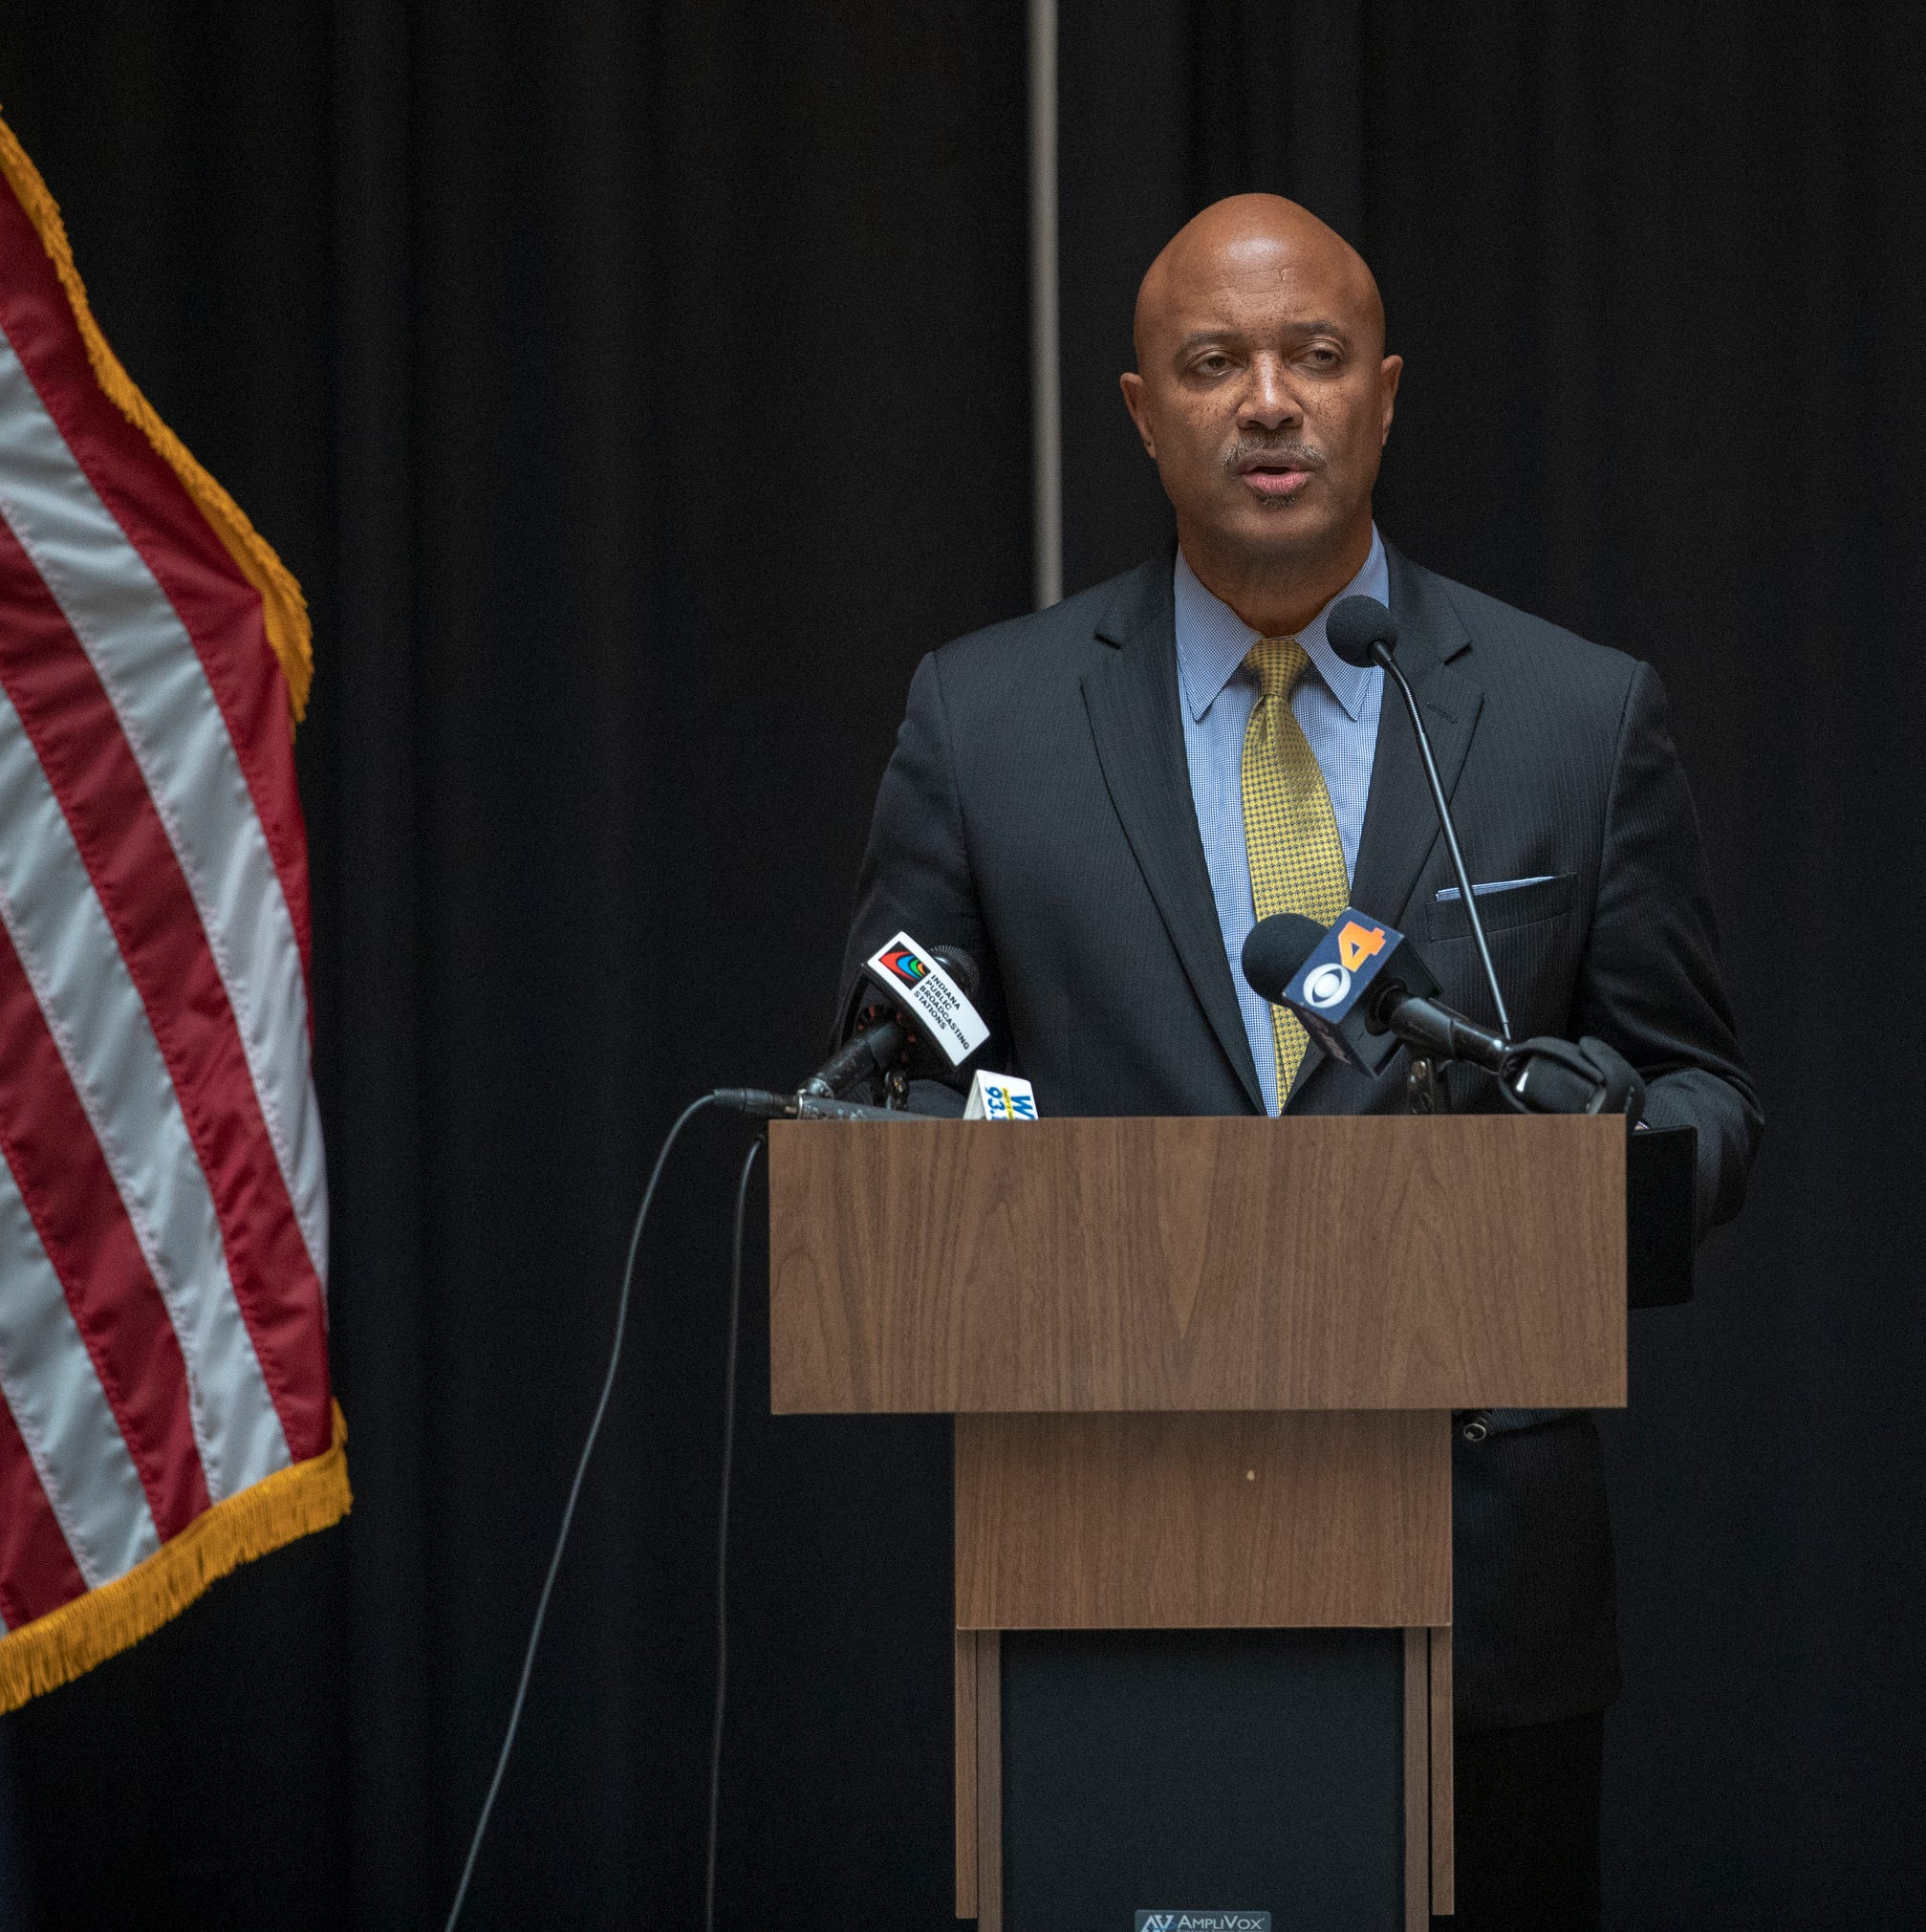 Op-ed: Indiana Attorney General Curtis Hill is 'a man of integrity'